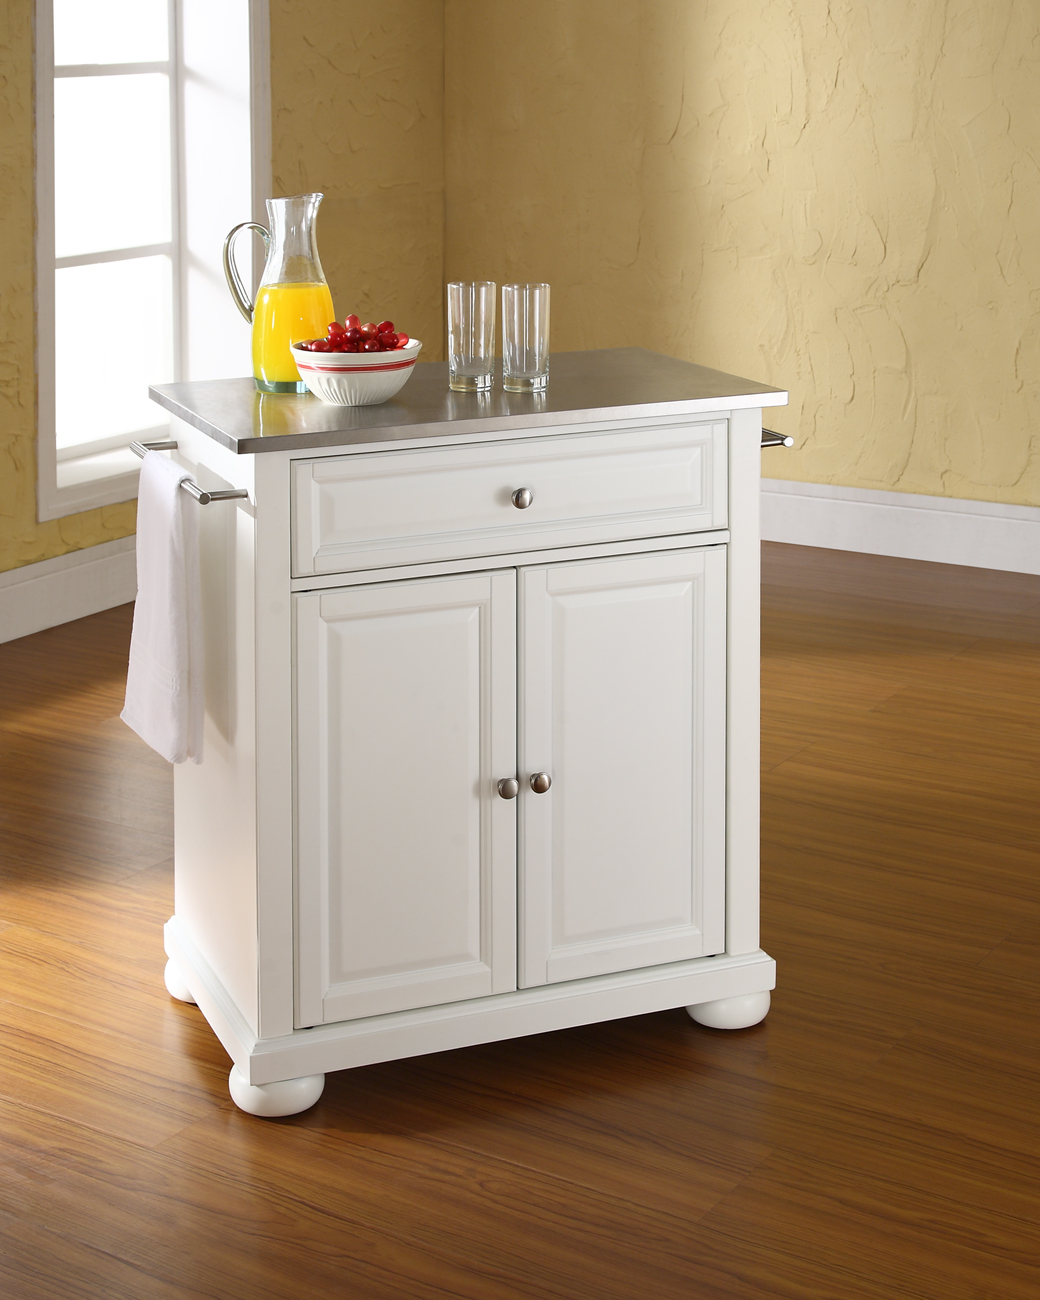 Alexandria Stainless Steel Top Portable Kitchen Island in White Finish - Crosley KF30022AWH